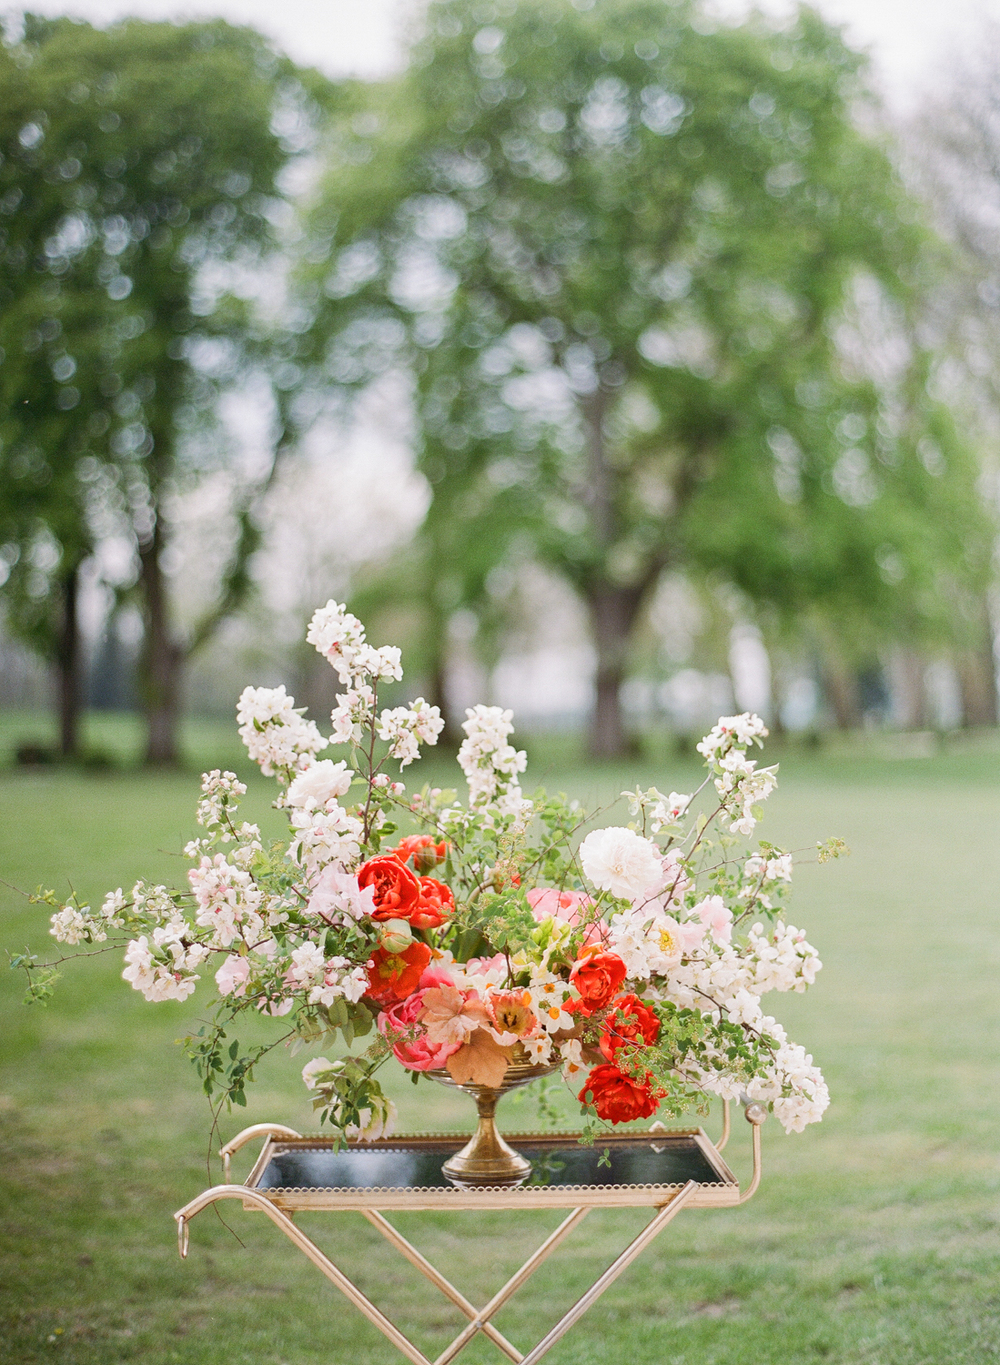 A tarnished gold vase holds an overflowing bouquet of reds and pastel pinks, set atop a gilt vintage tray; photo by Sylvie Gil